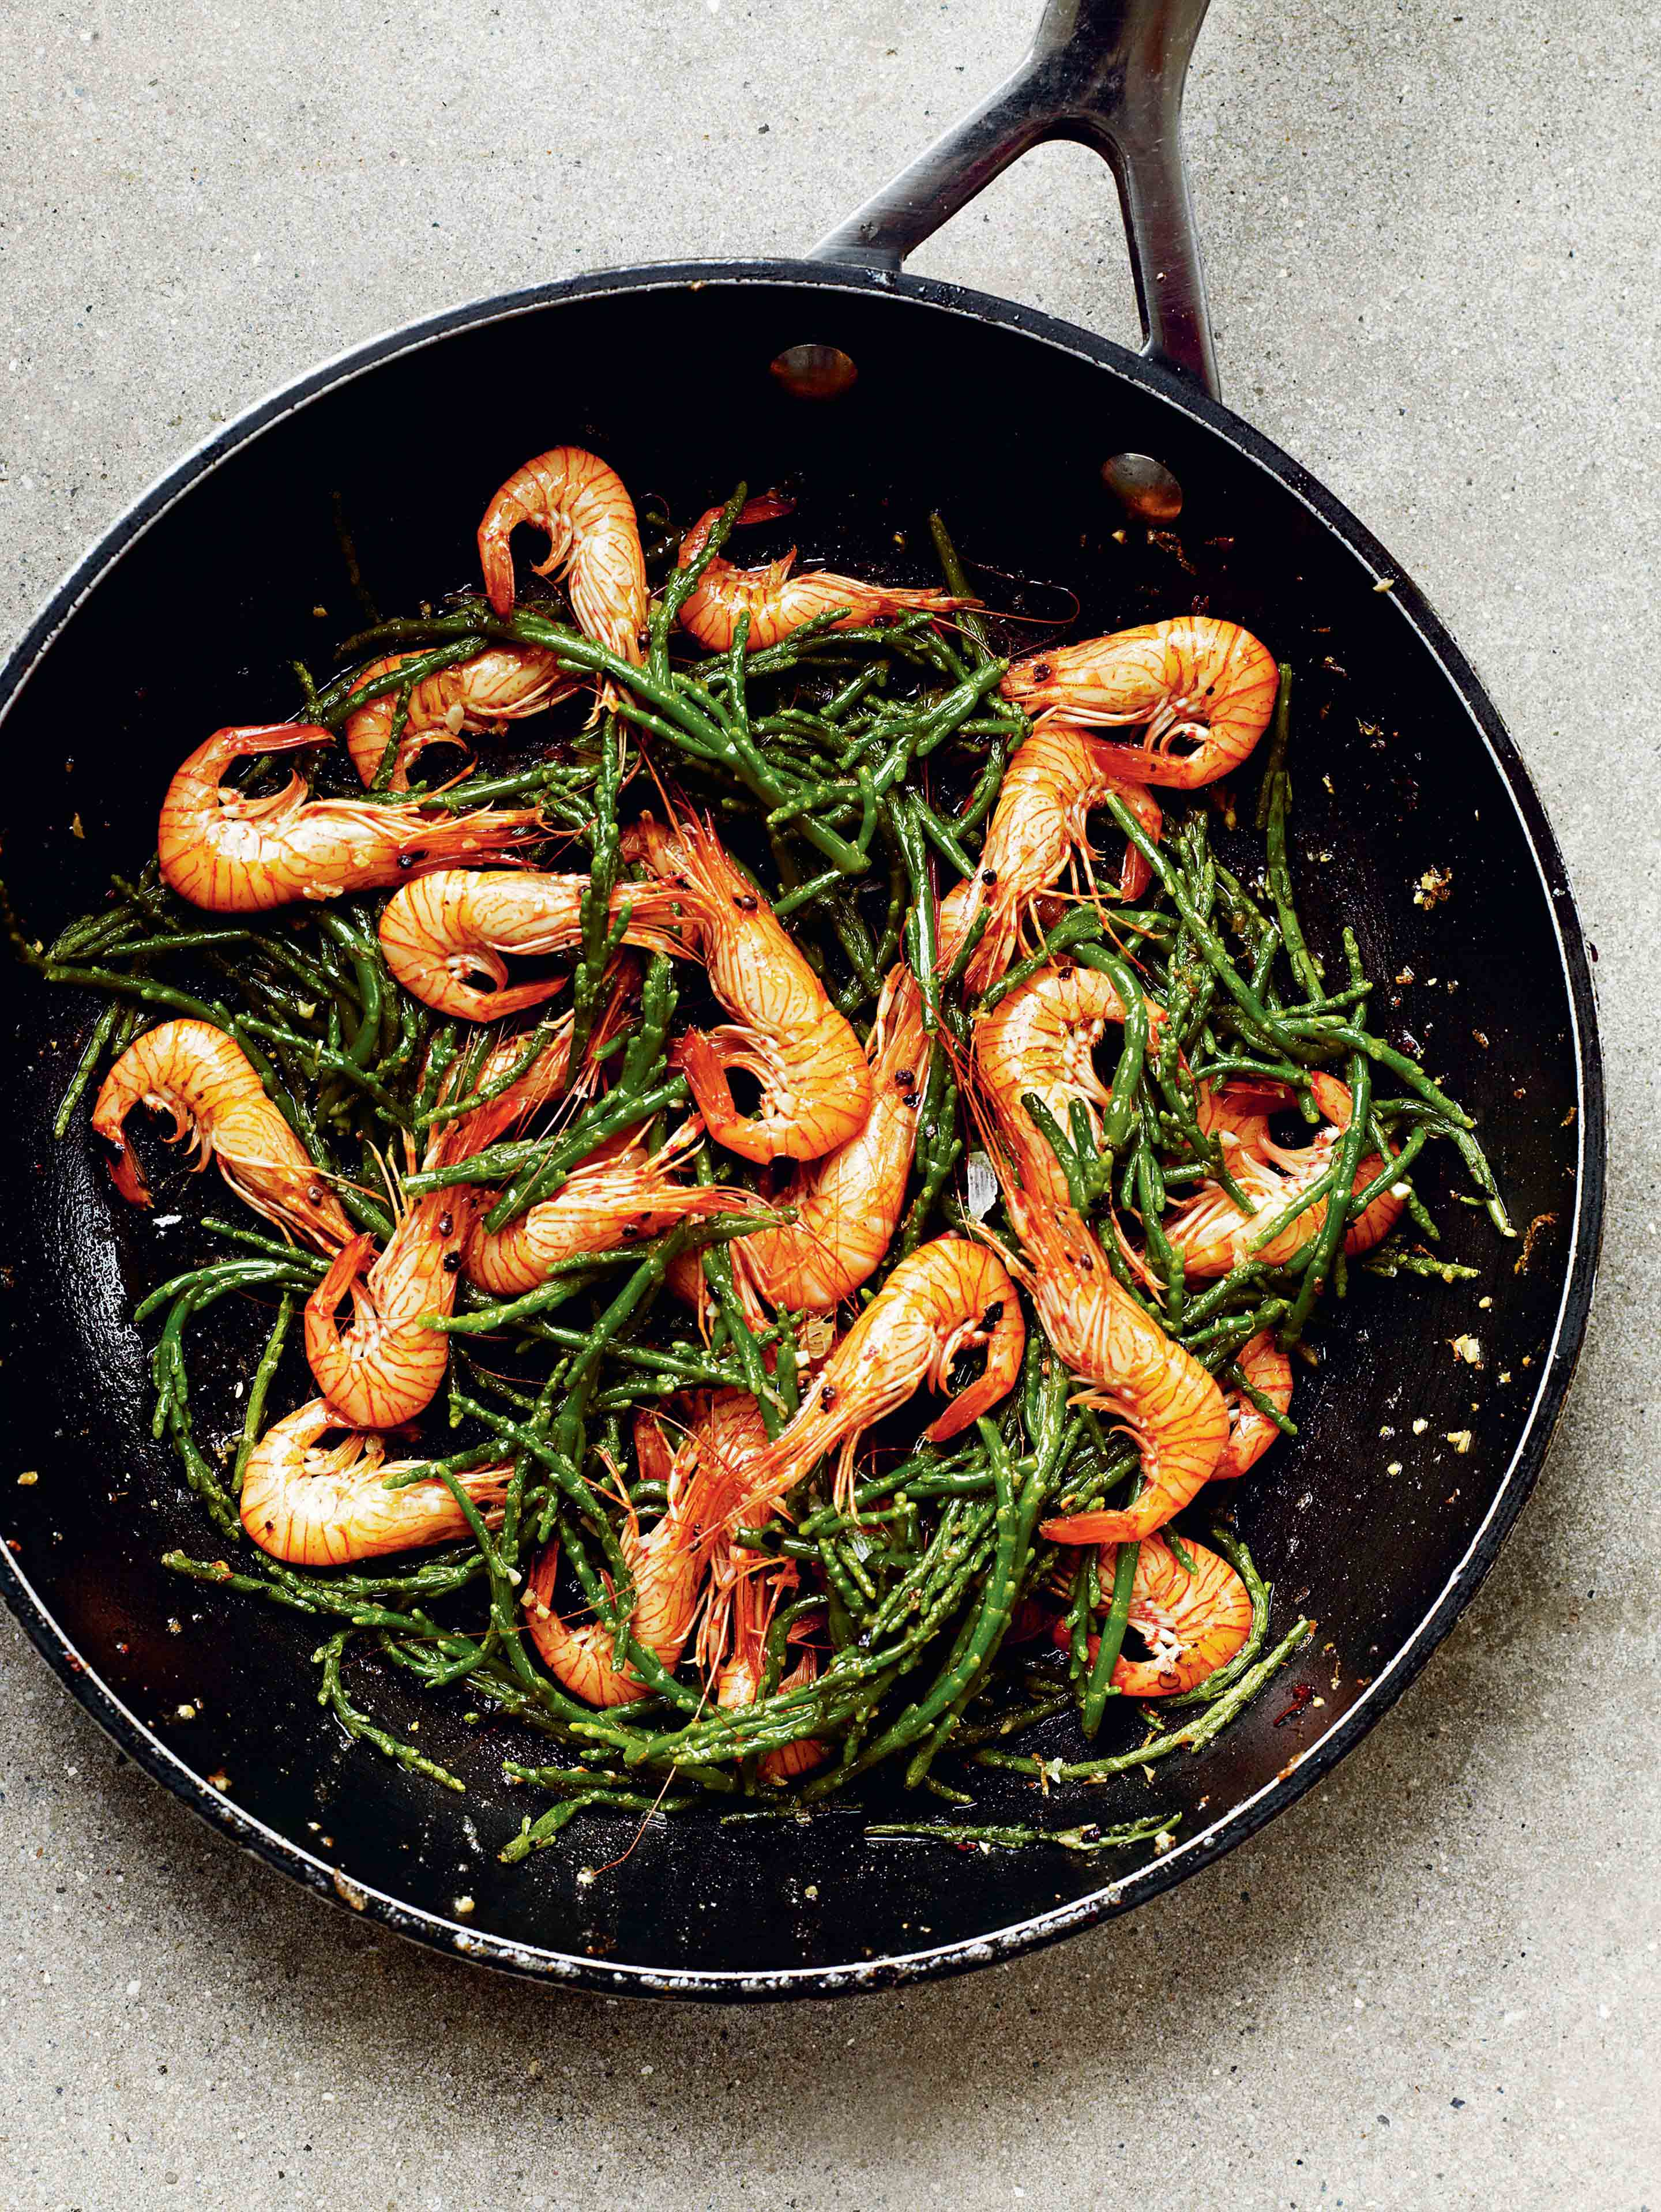 Samphire & prawns with butter & mace